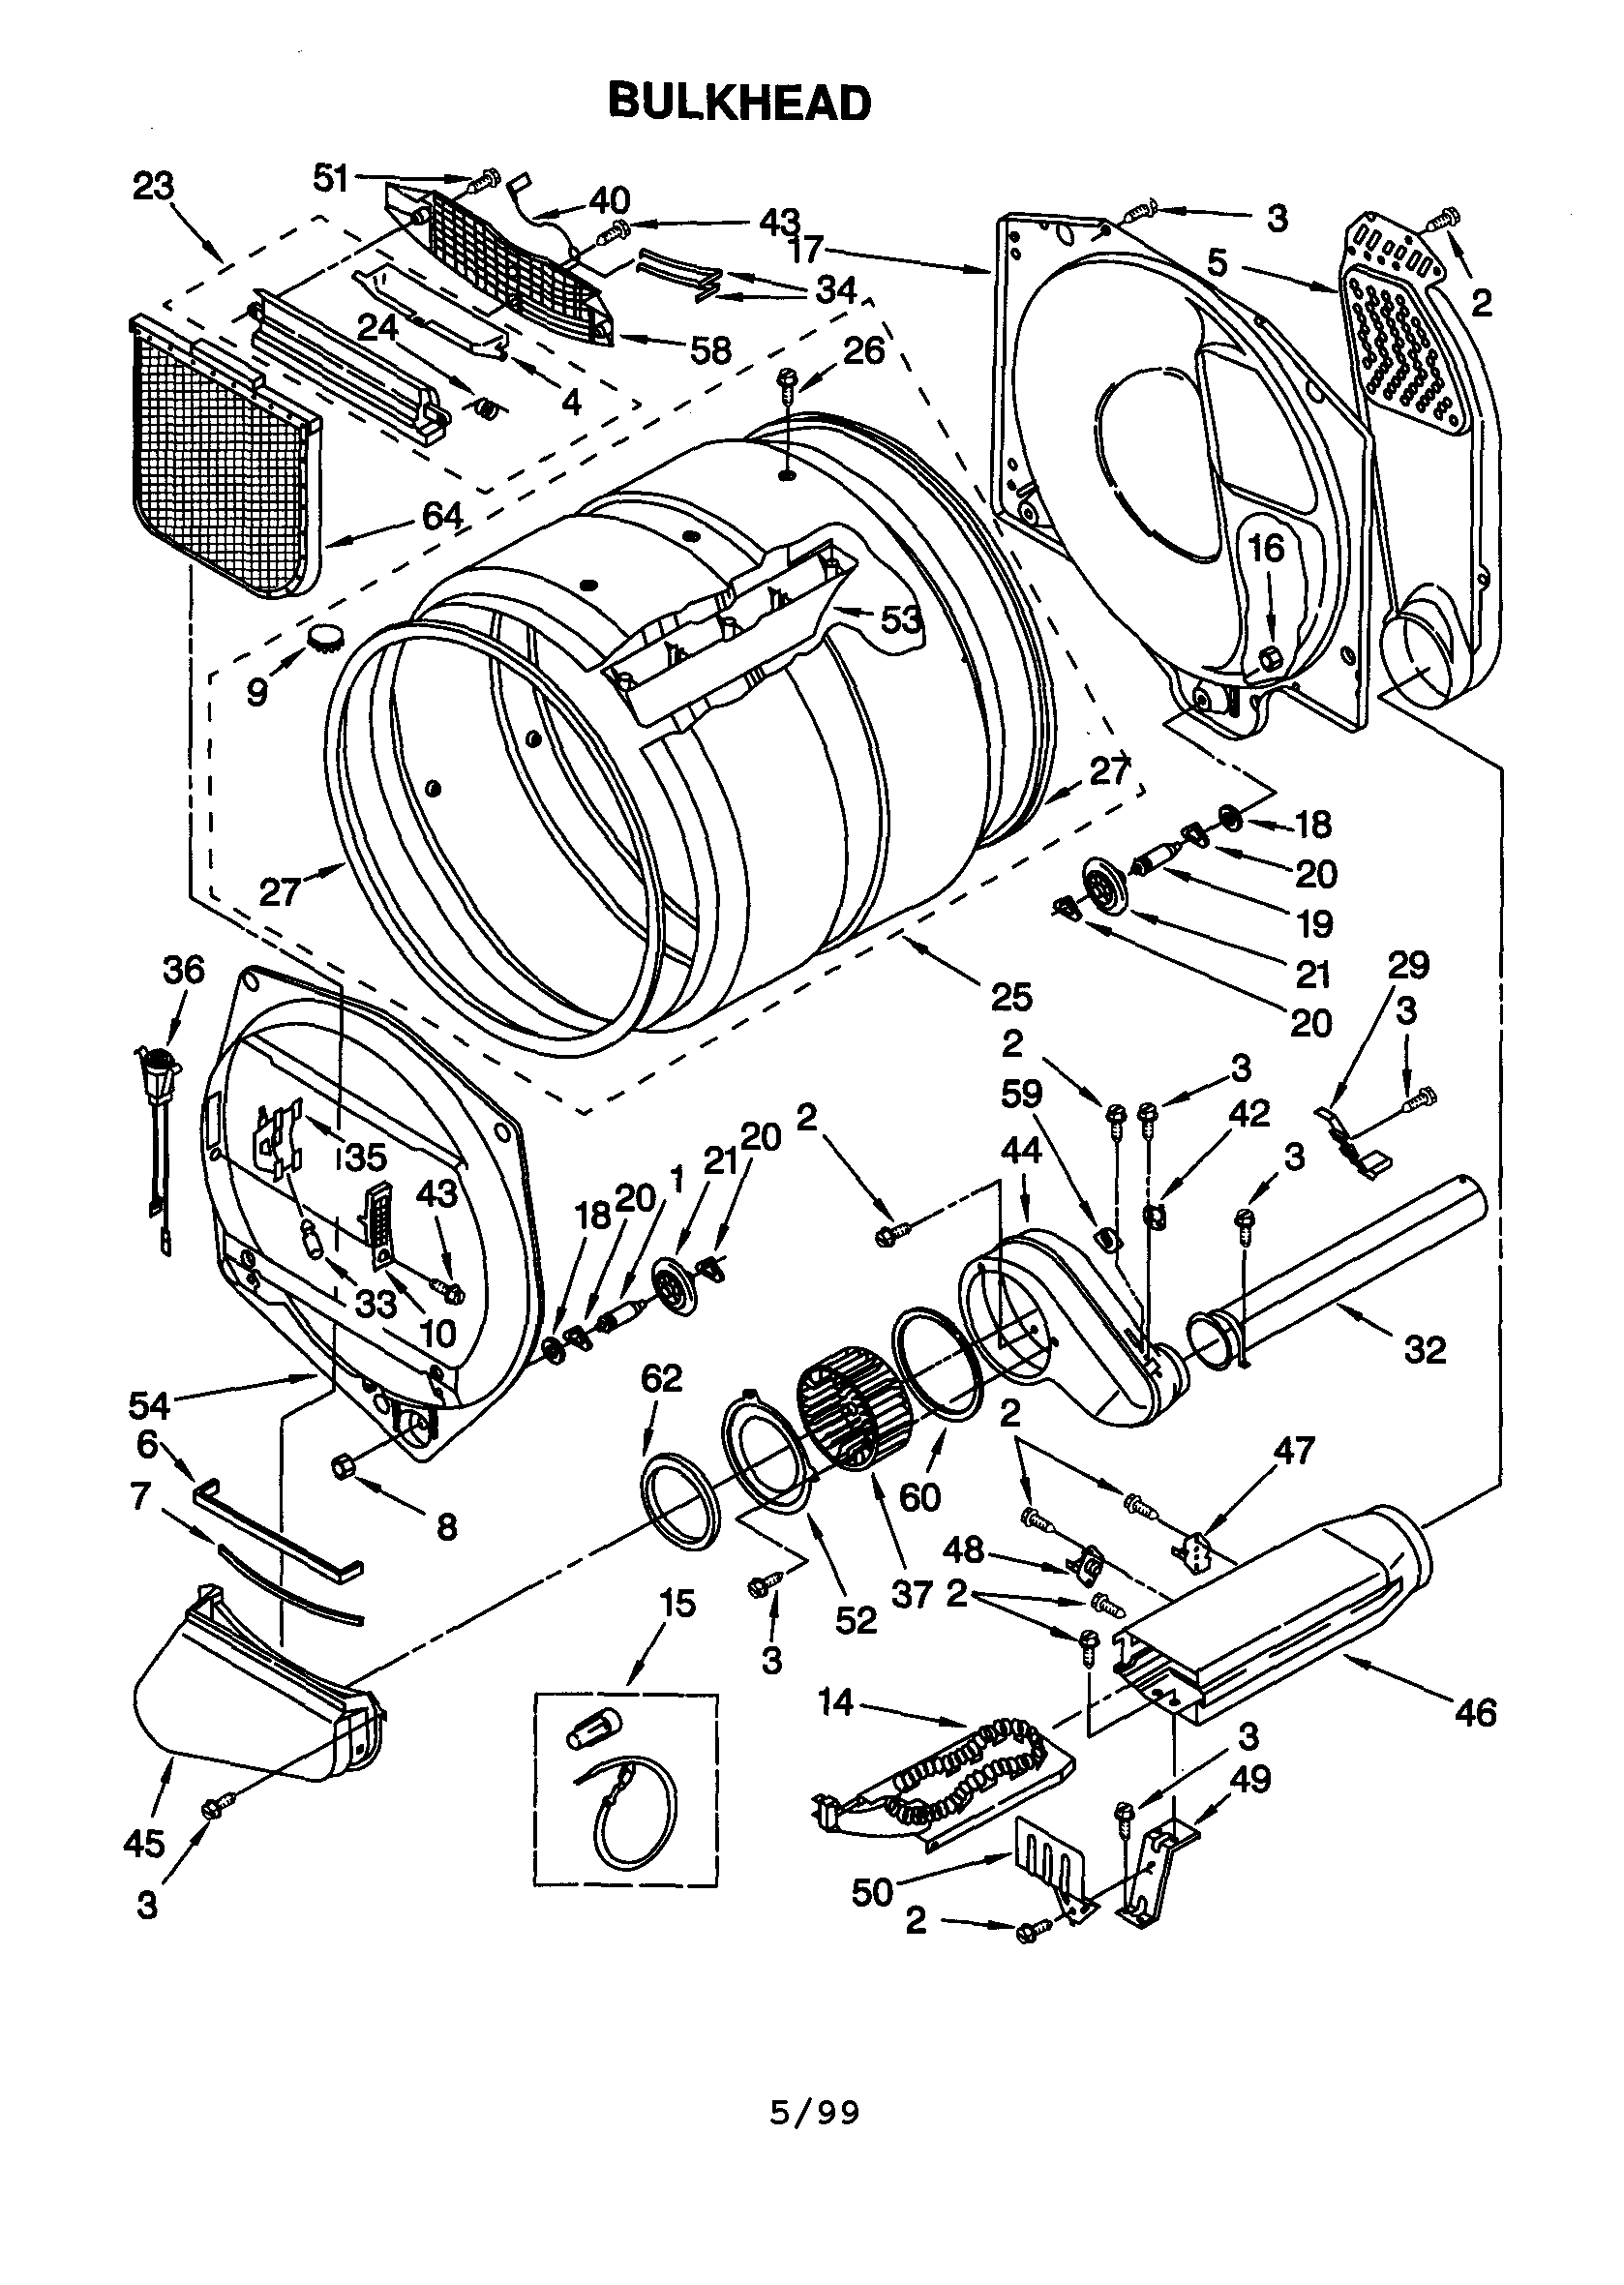 Kenmore 90 Series model 110 60912990 parts diagram | Dryer Repair